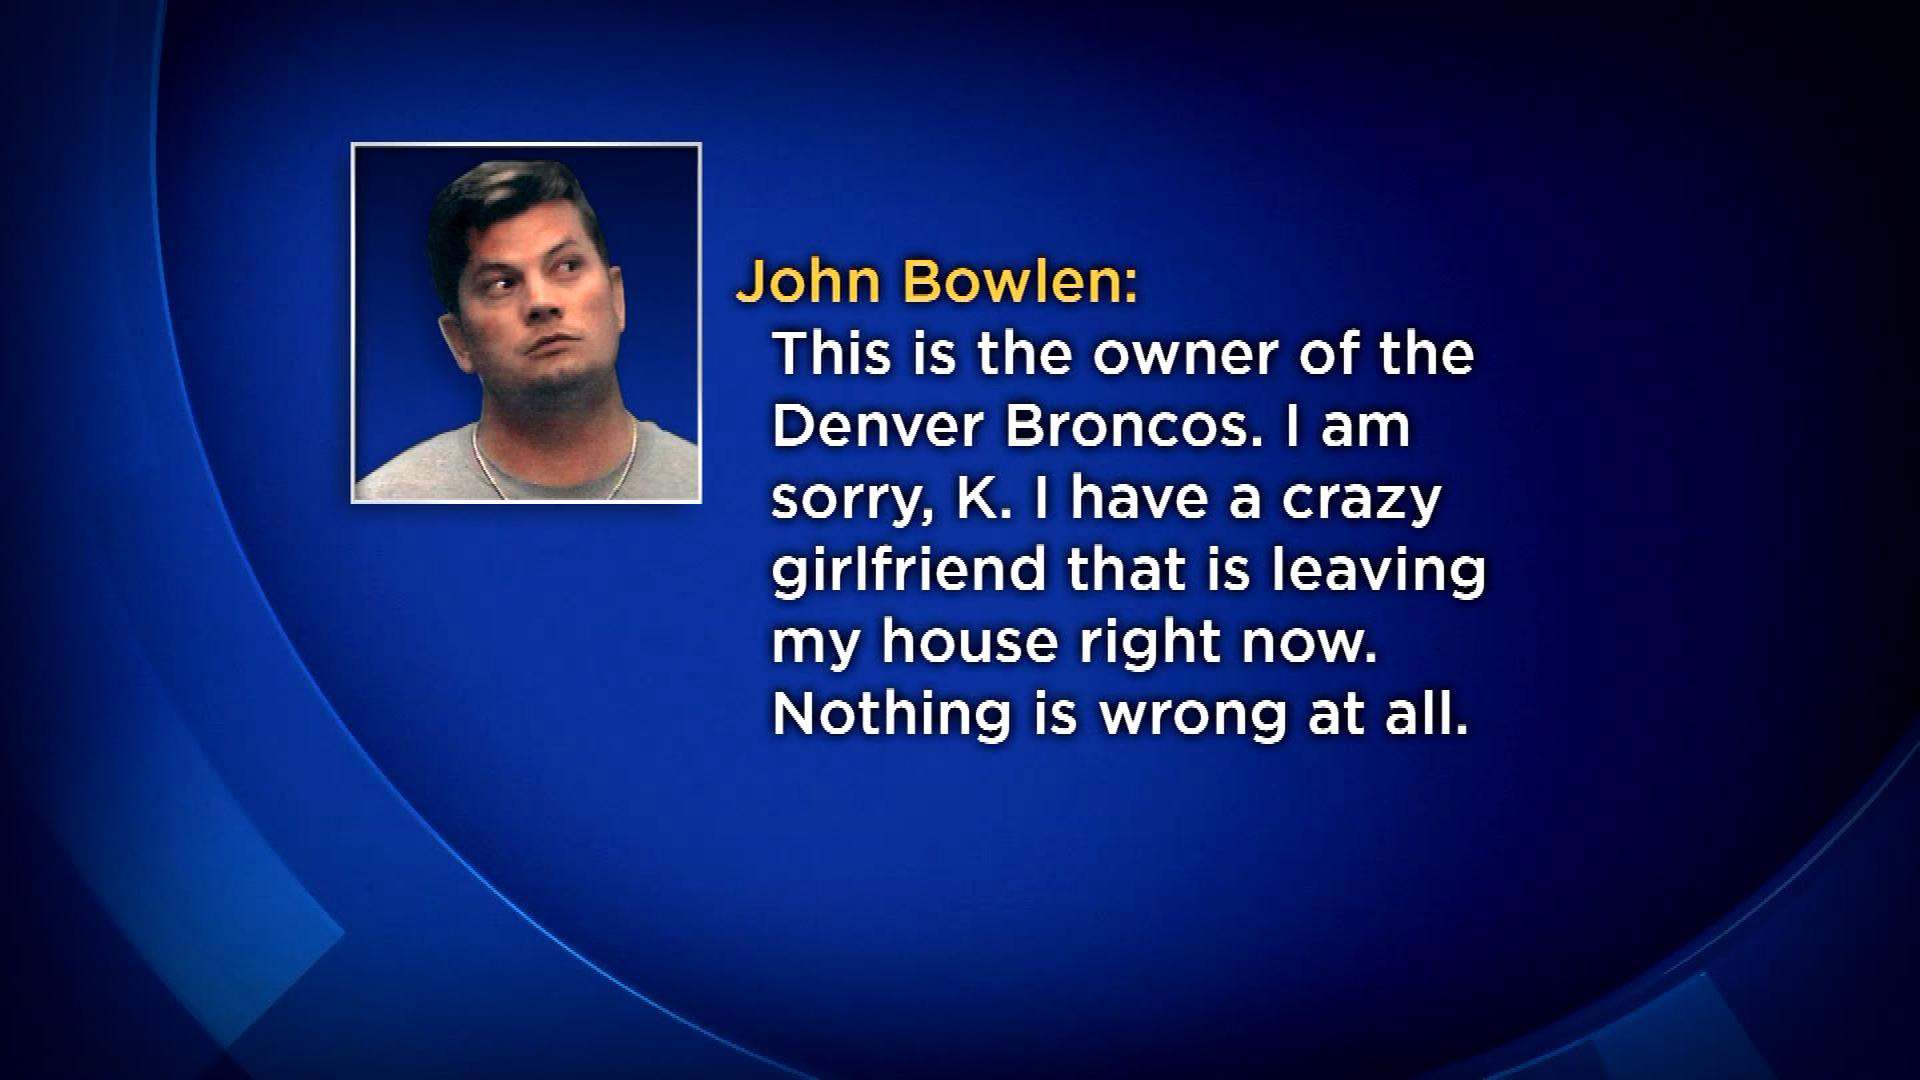 A portion of the 911 call with John Bowlen (credit: CBS)